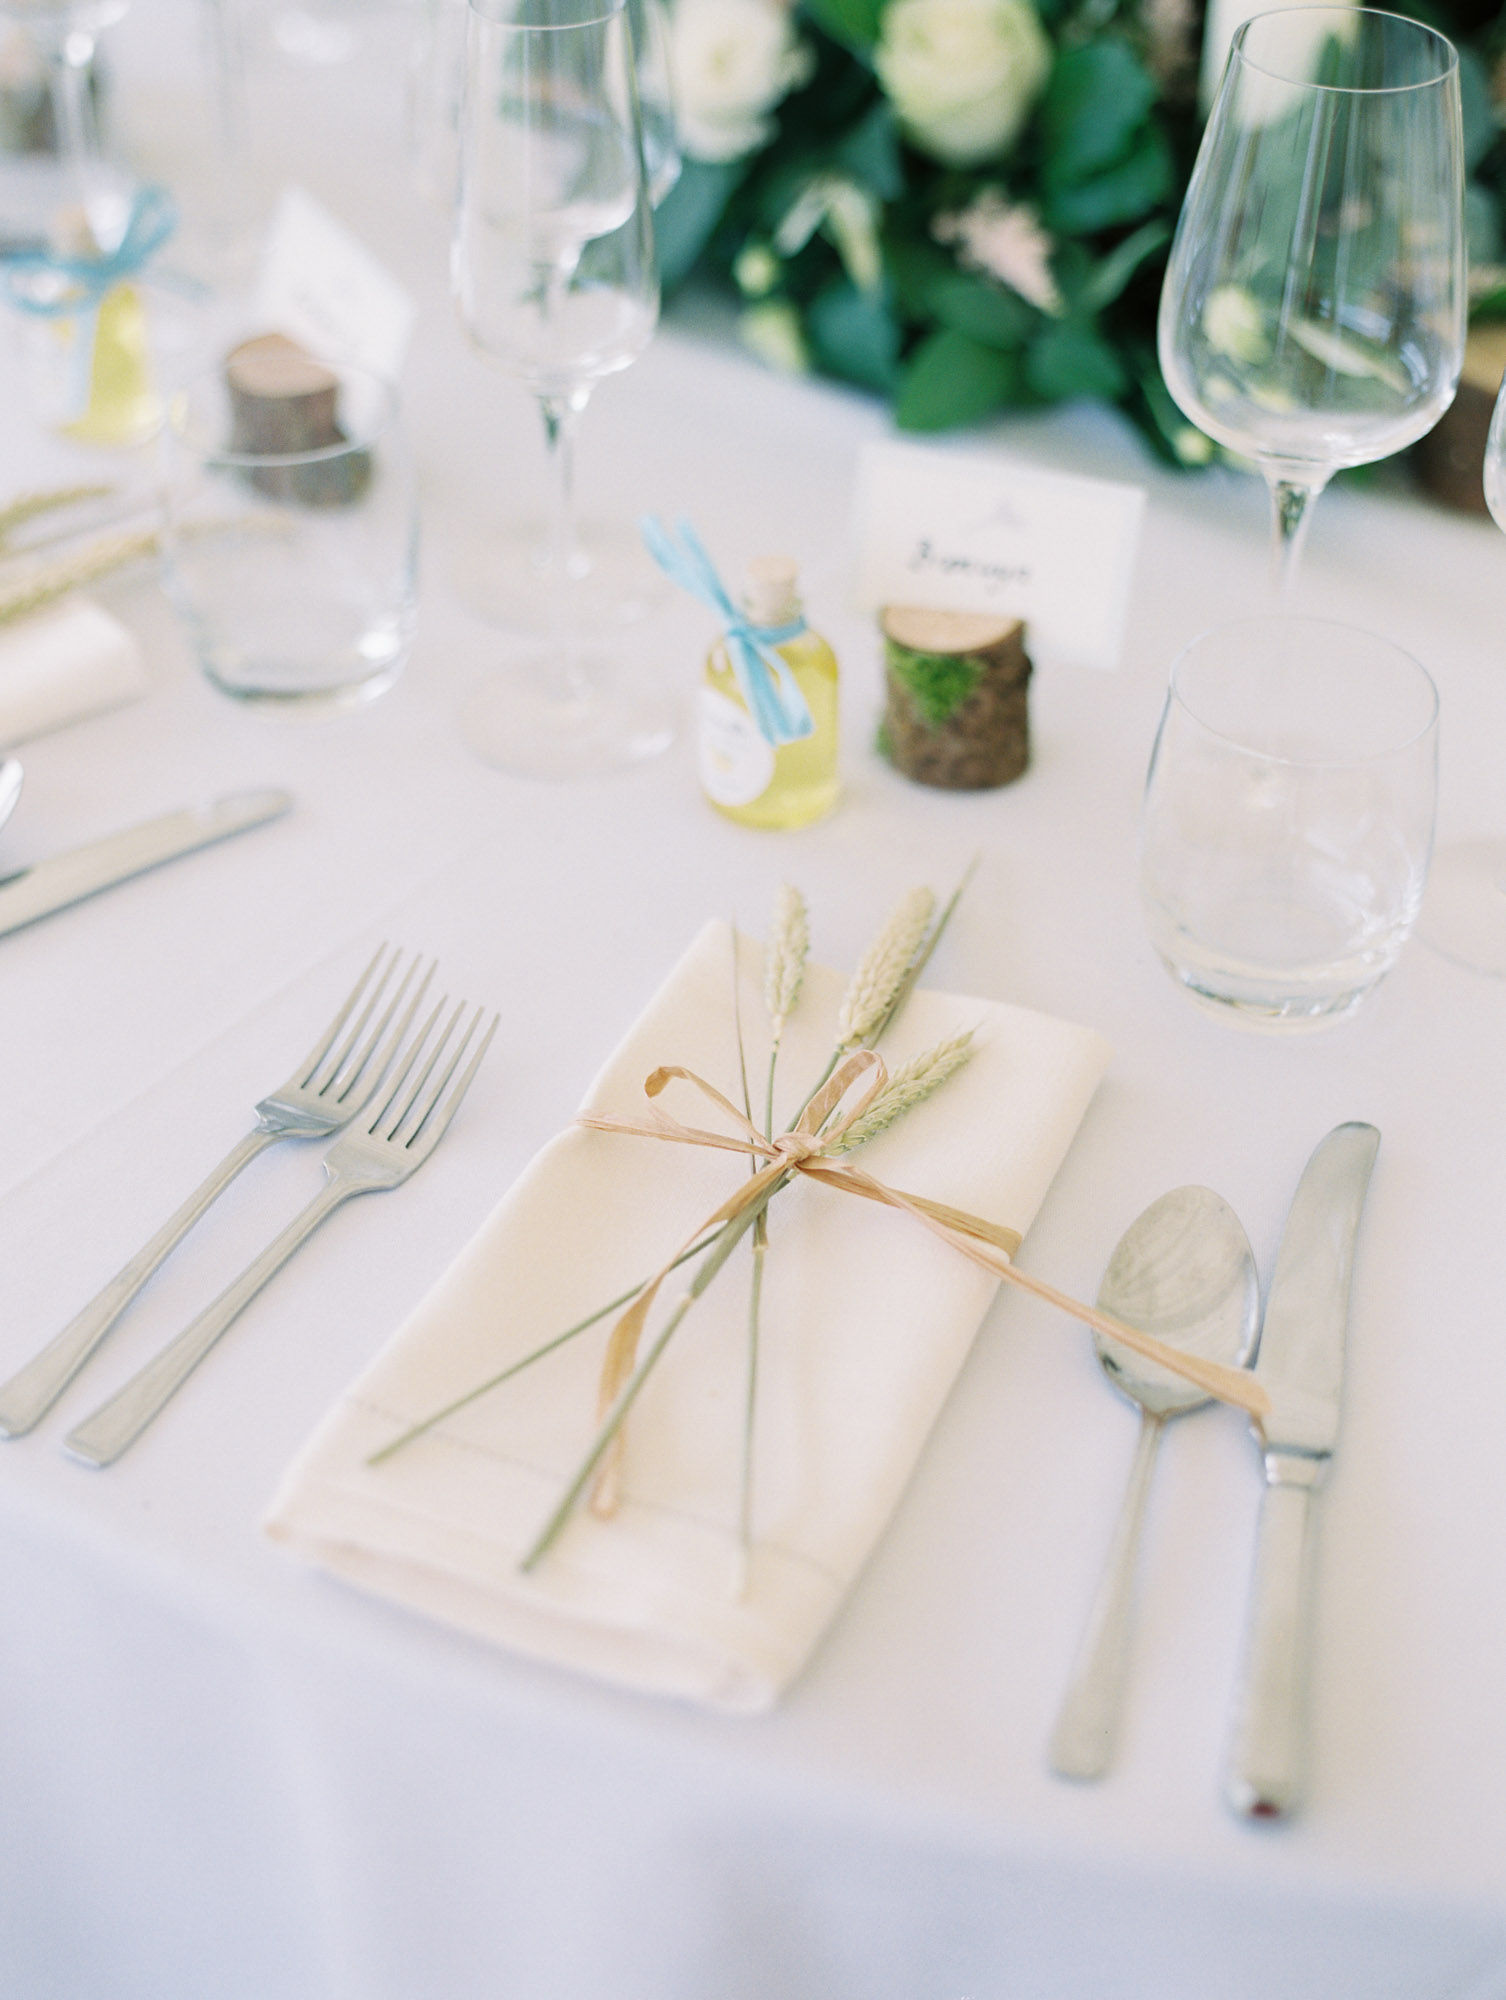 Wheat ear wedding favours on table at Sussex Garden Wedding